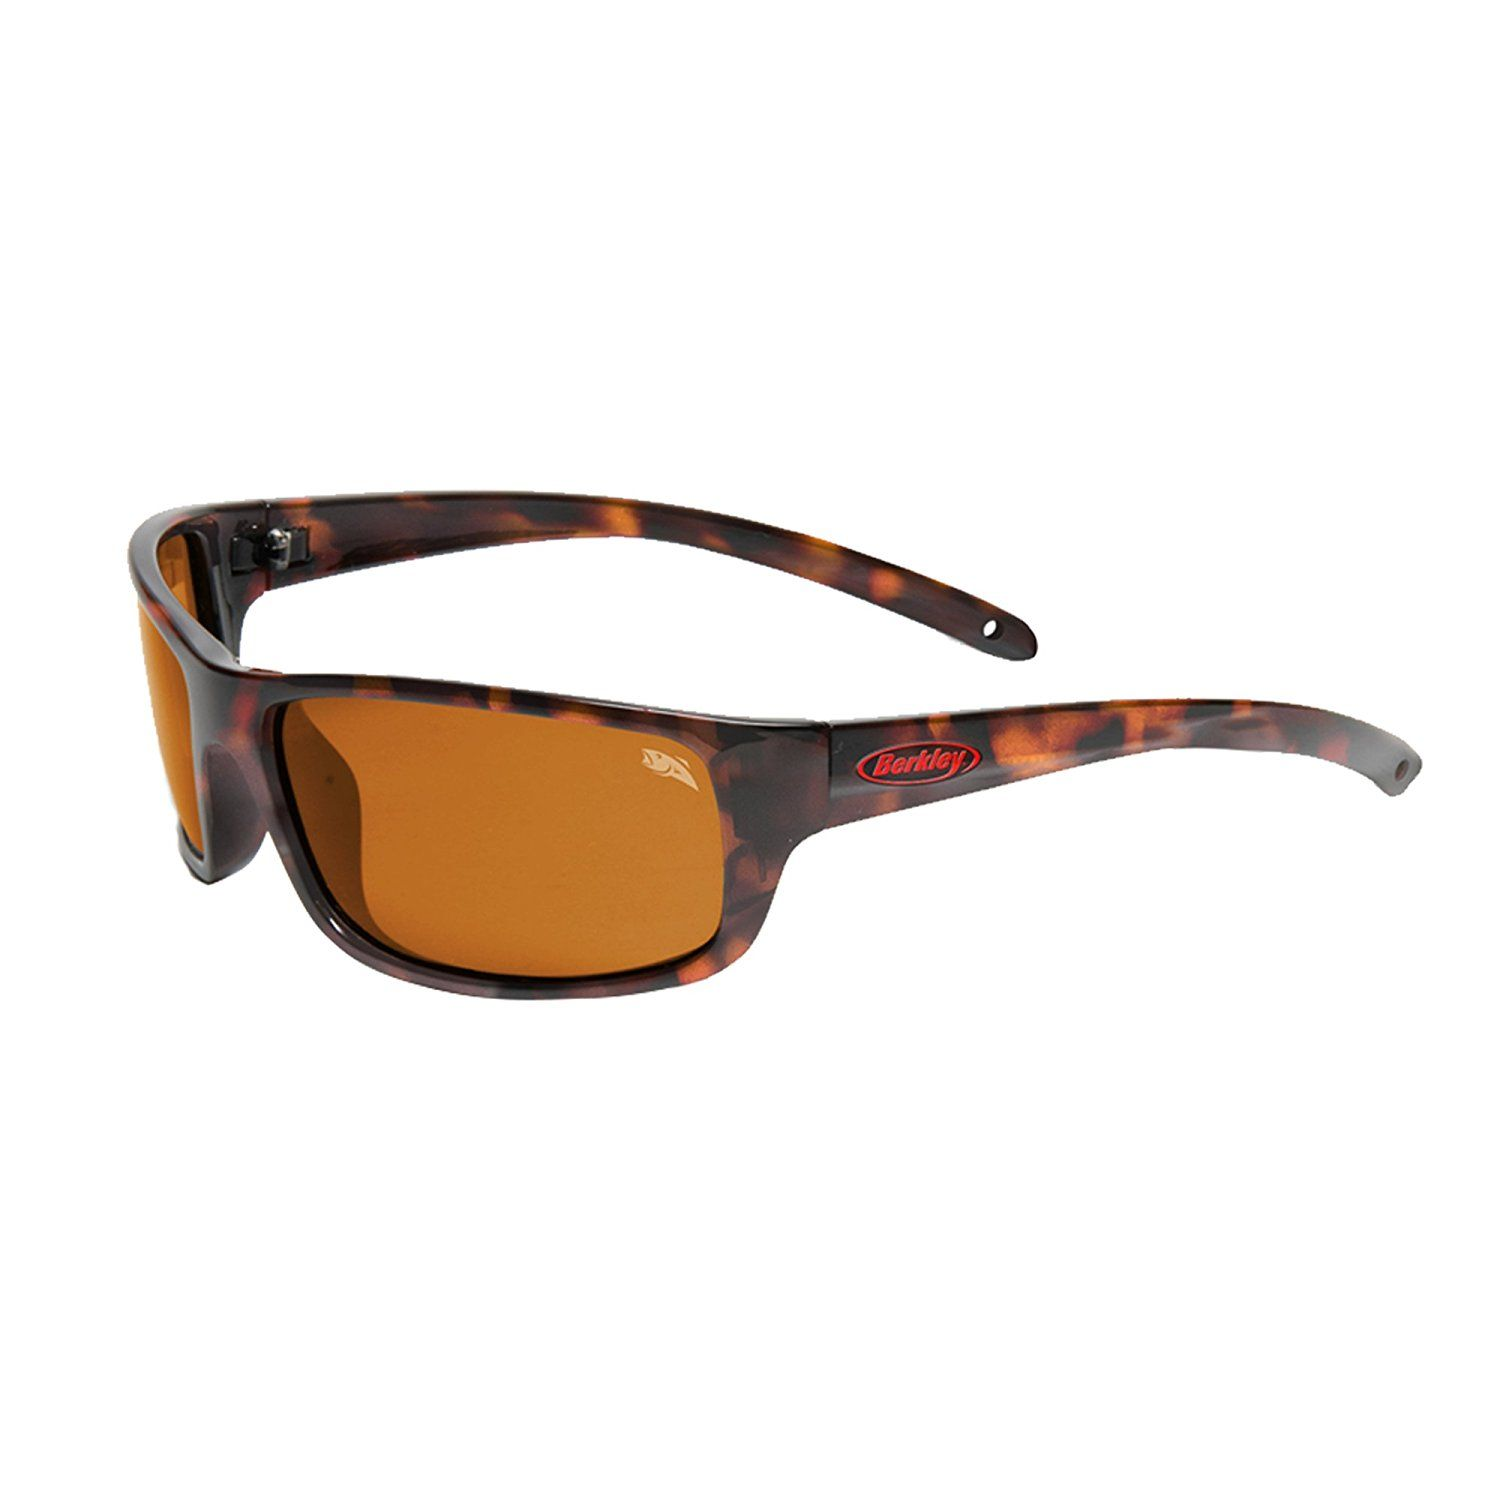 a9c31660624 Berkley Dodge Sunglasses   Visit the image link more details ...